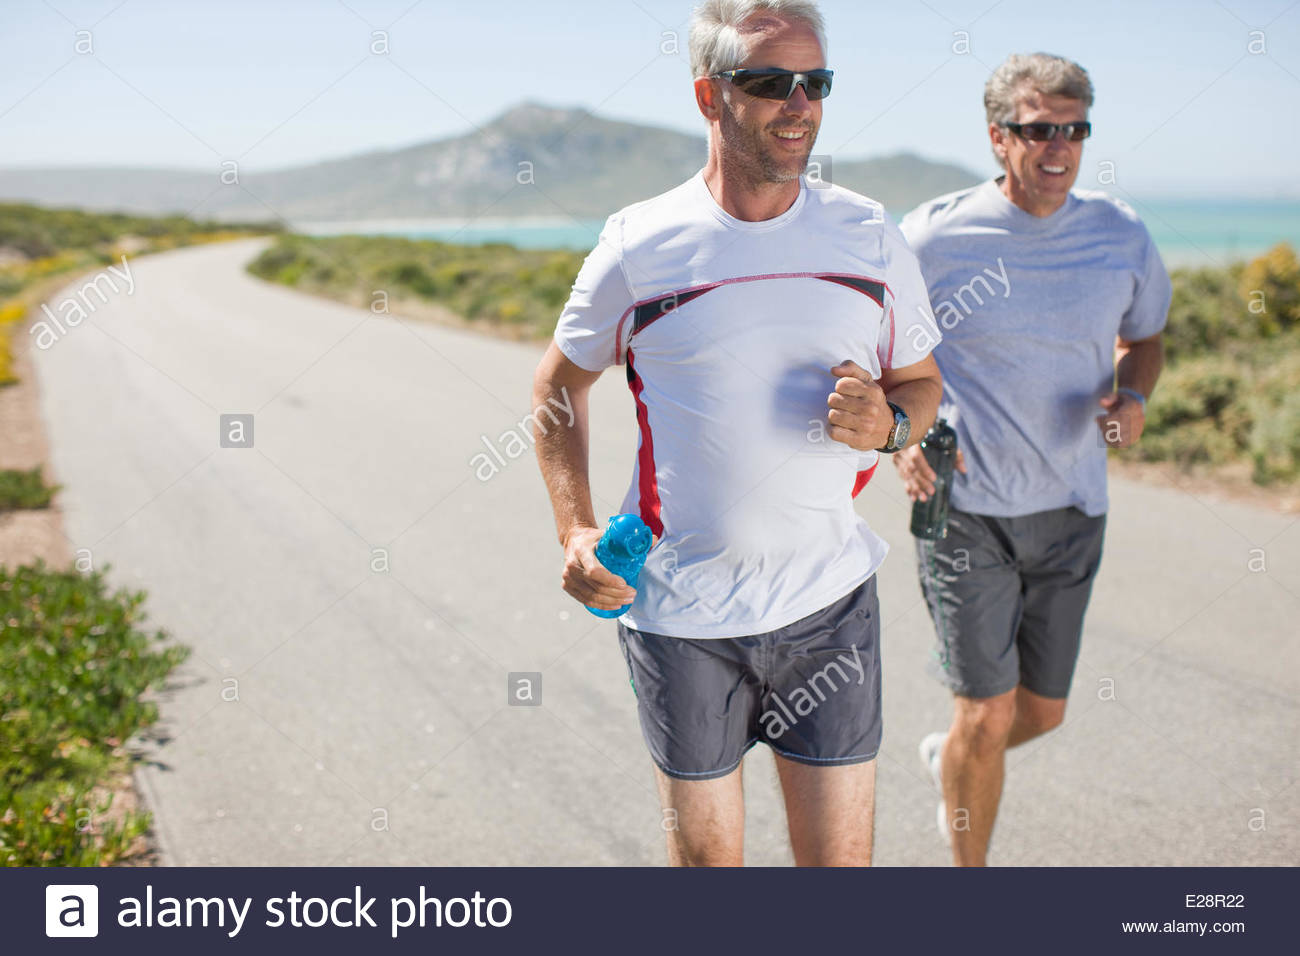 Men jogging and carrying water bottles - Stock Image